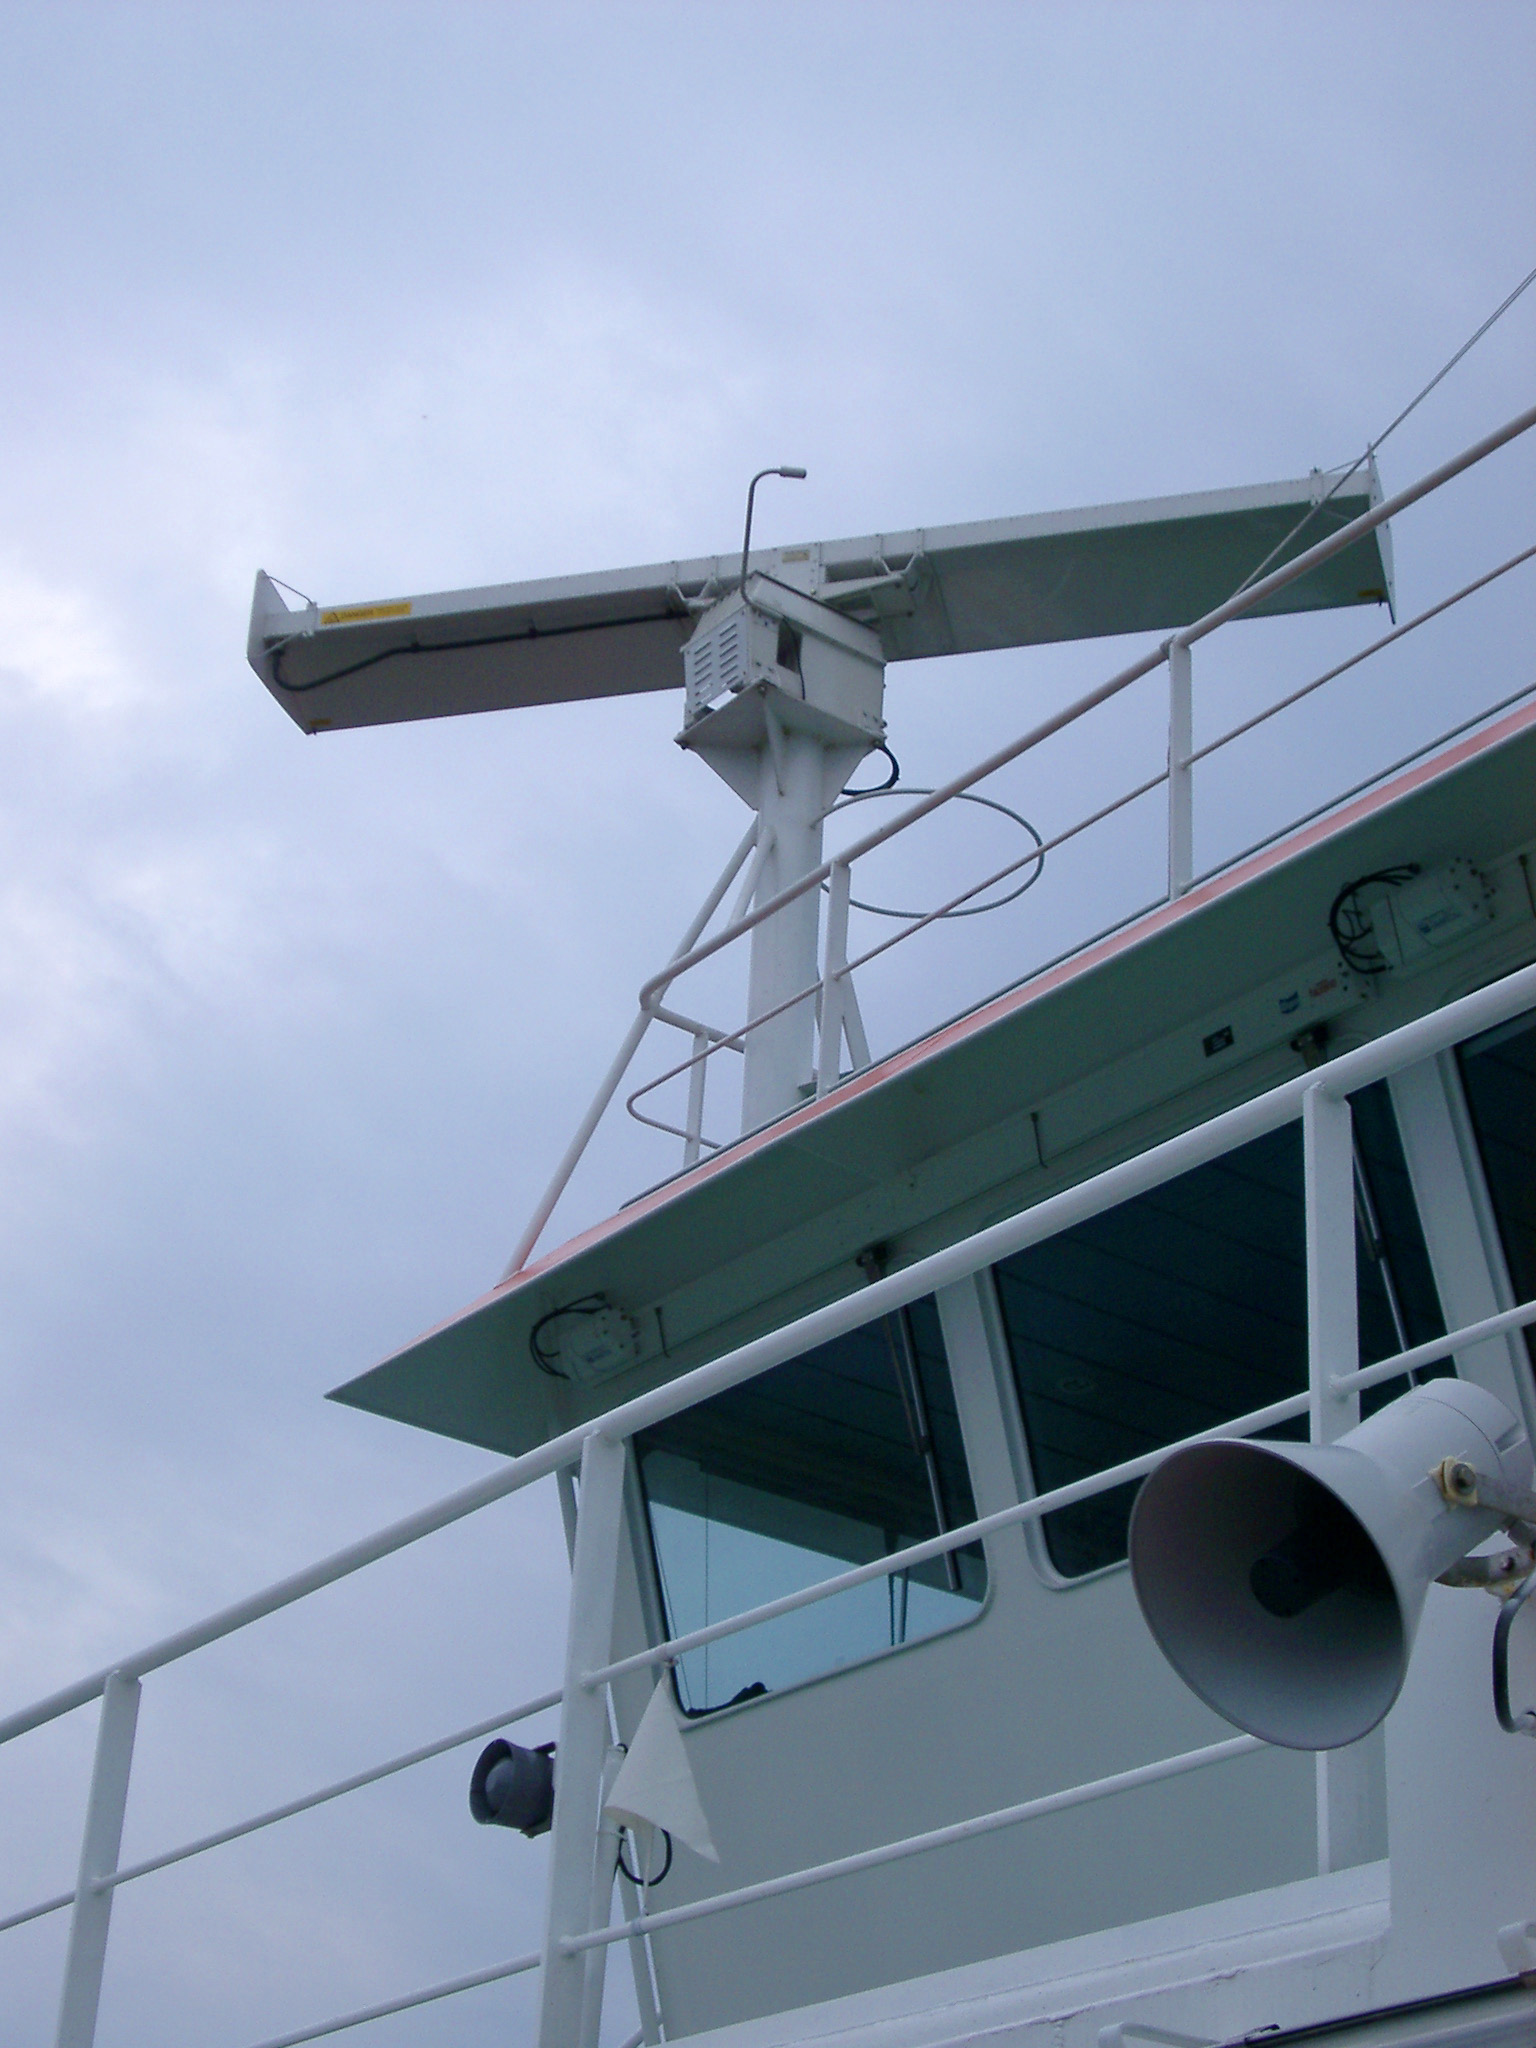 Loud-hailer and radar equipment detail for communication and navigation on a ferry